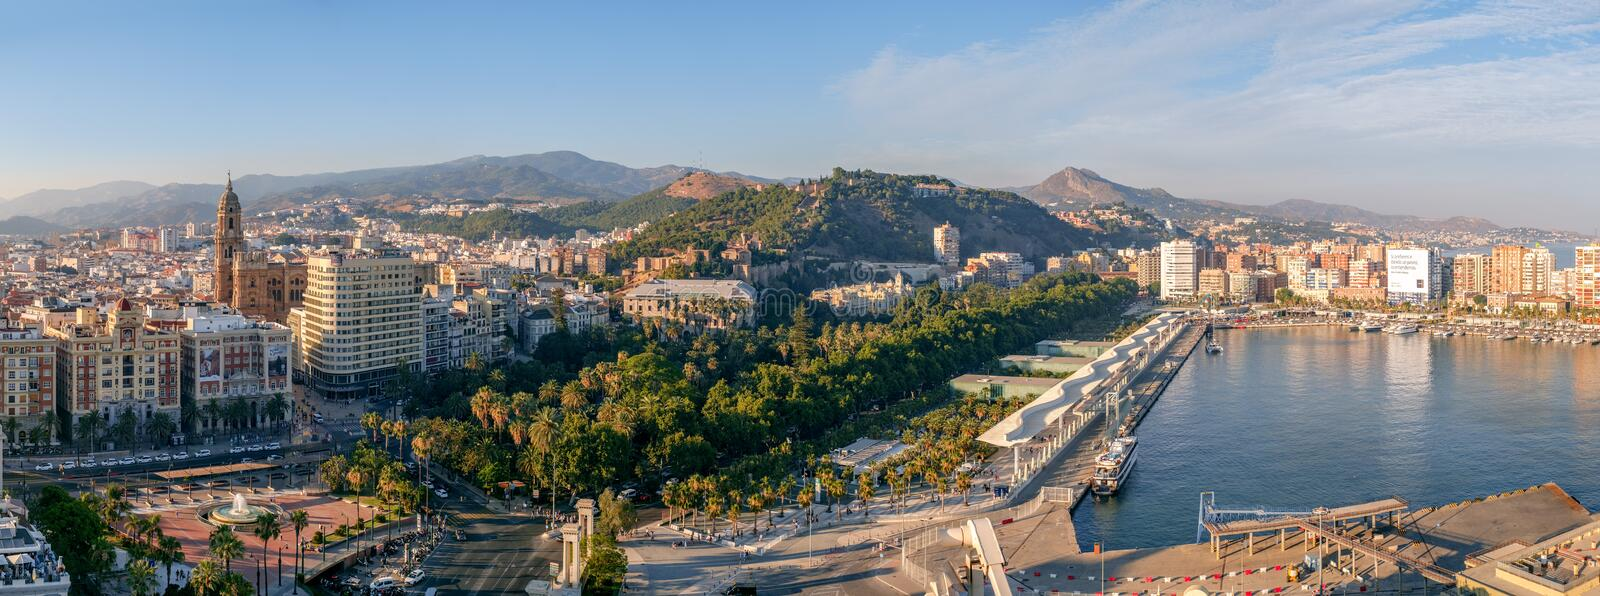 Panoramic view of the Malaga city royalty free stock images